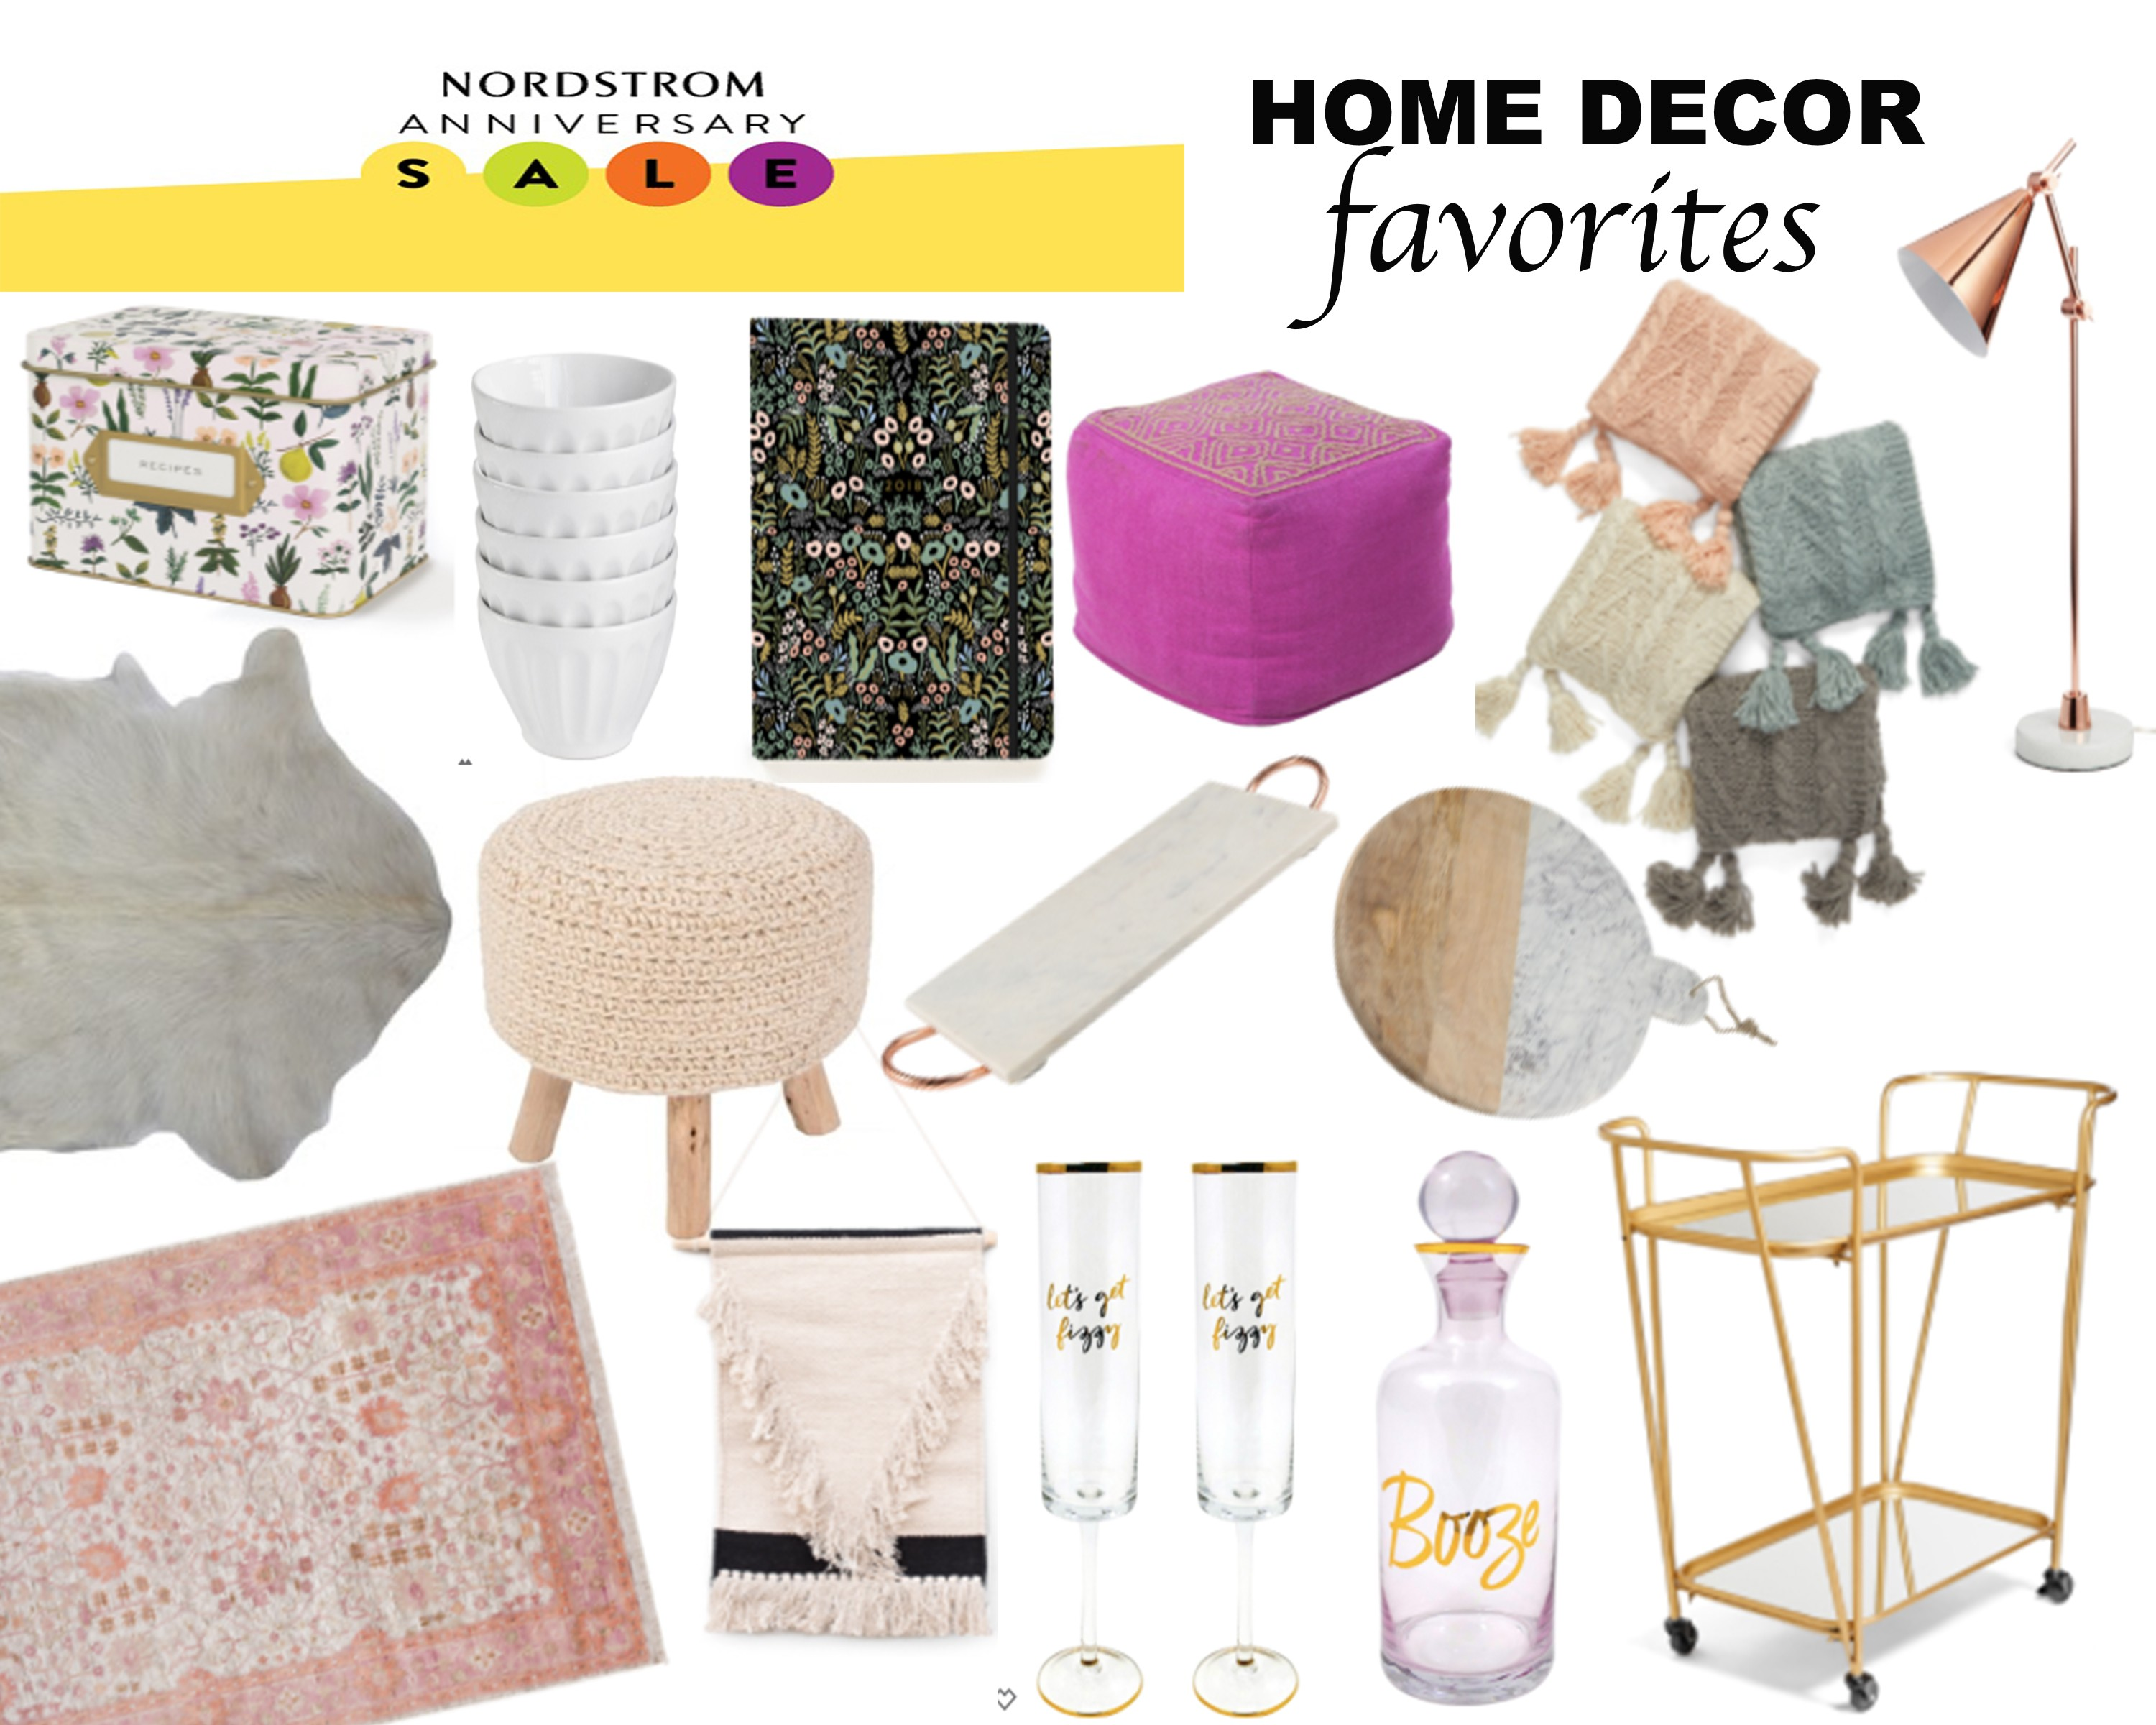 Nordstrom anniversary home decor favorites Nordstrom home decor sale